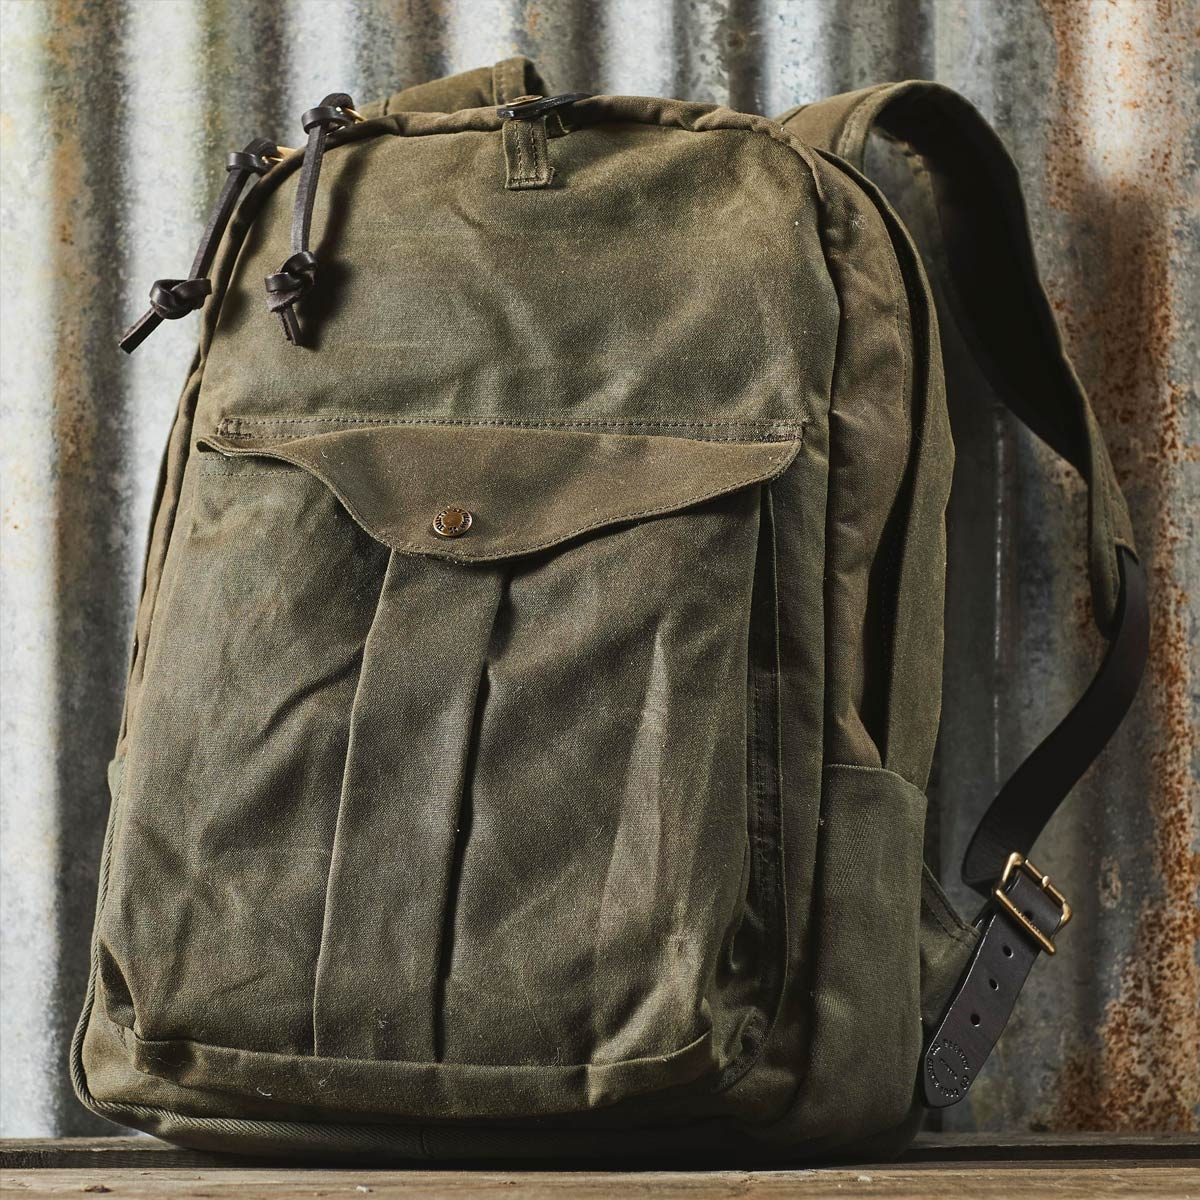 Filson Journeyman Backpack 11070307 Otter Green, great for hiking and for hauling stuff around town